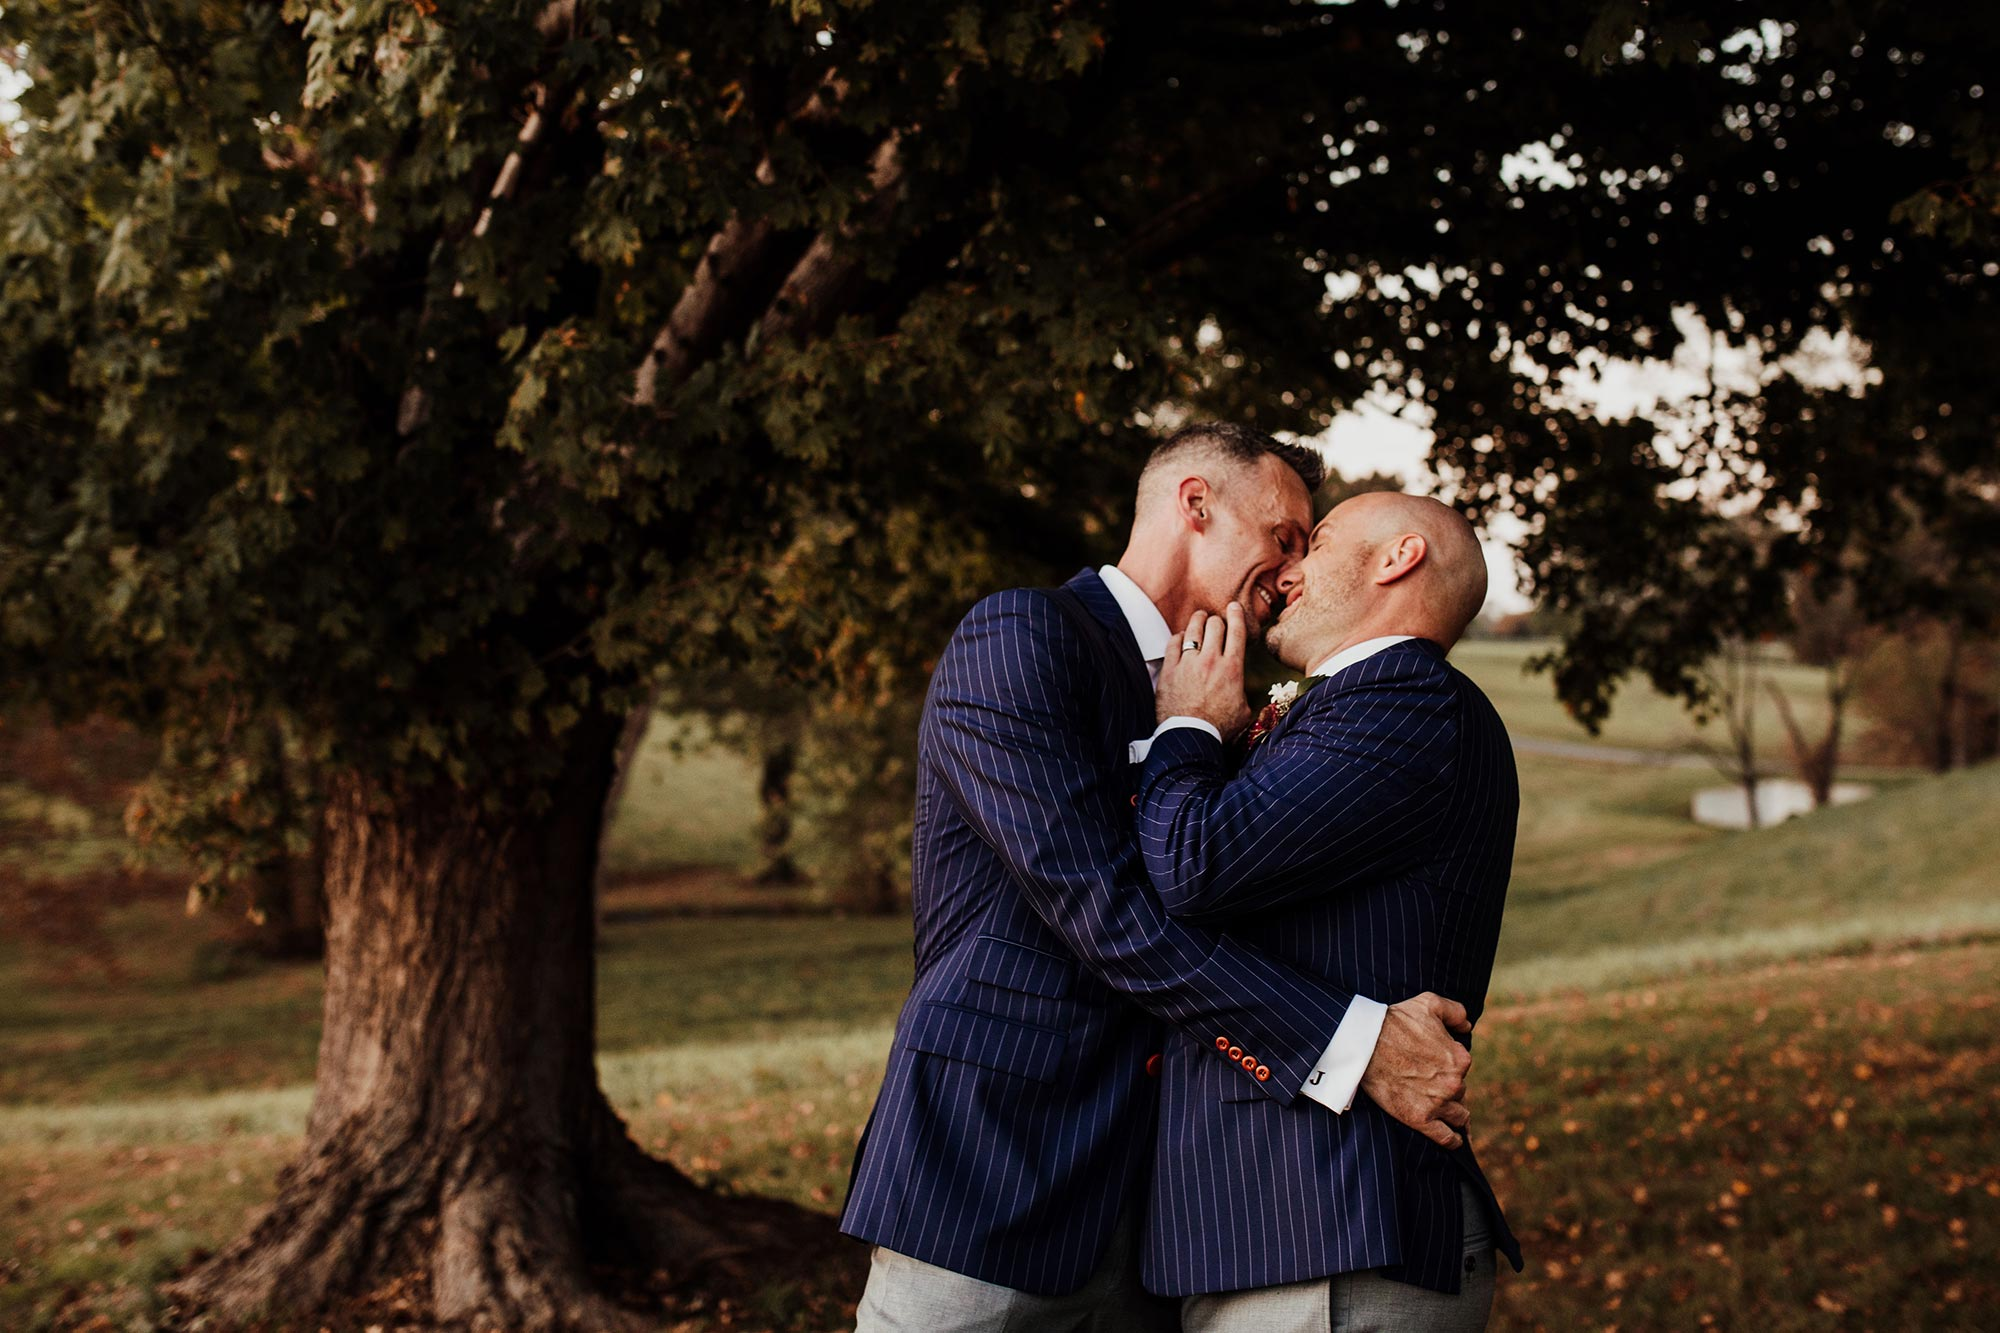 LGBTQ Louisville Kentucky Wedding at Hermitage Farm Crystal Ludwick Photo kiss in yard